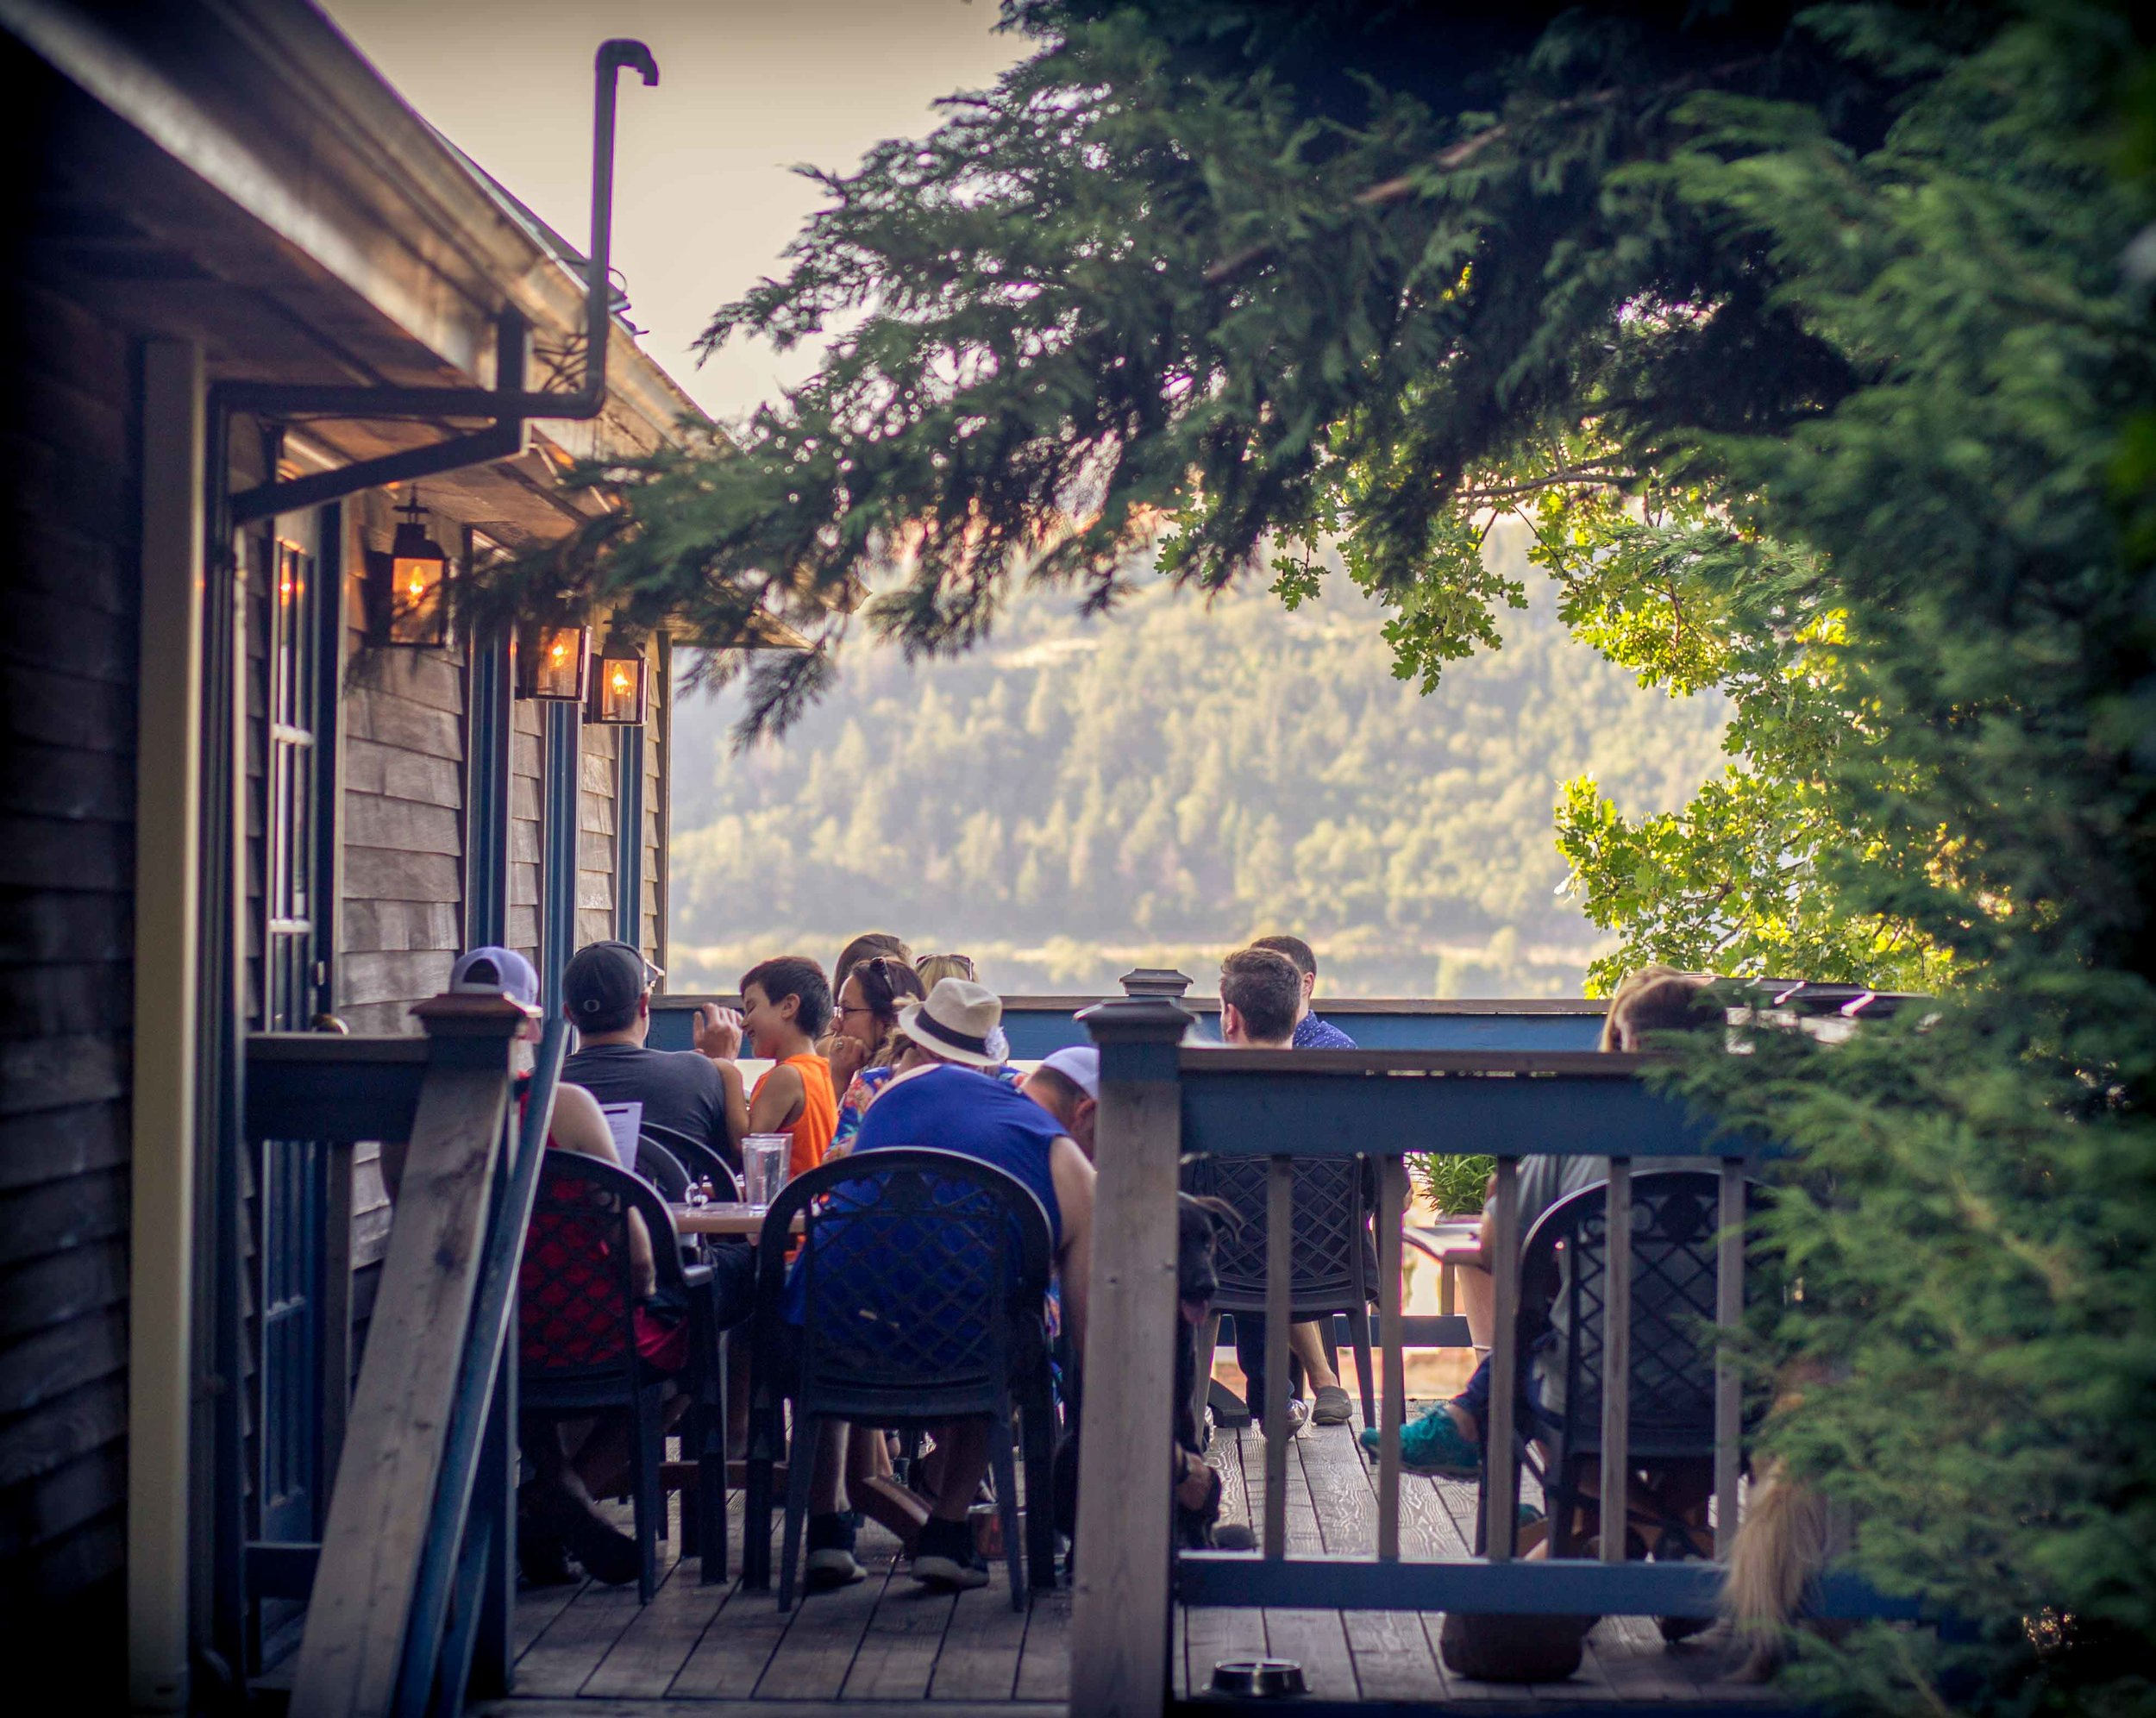 Big Horse Brew Pub Hood River Oregon Columbia Gorge Beer Food Places to Eat Wine Find Dining Scenic Downtown Horse Big Forest-8.jpg